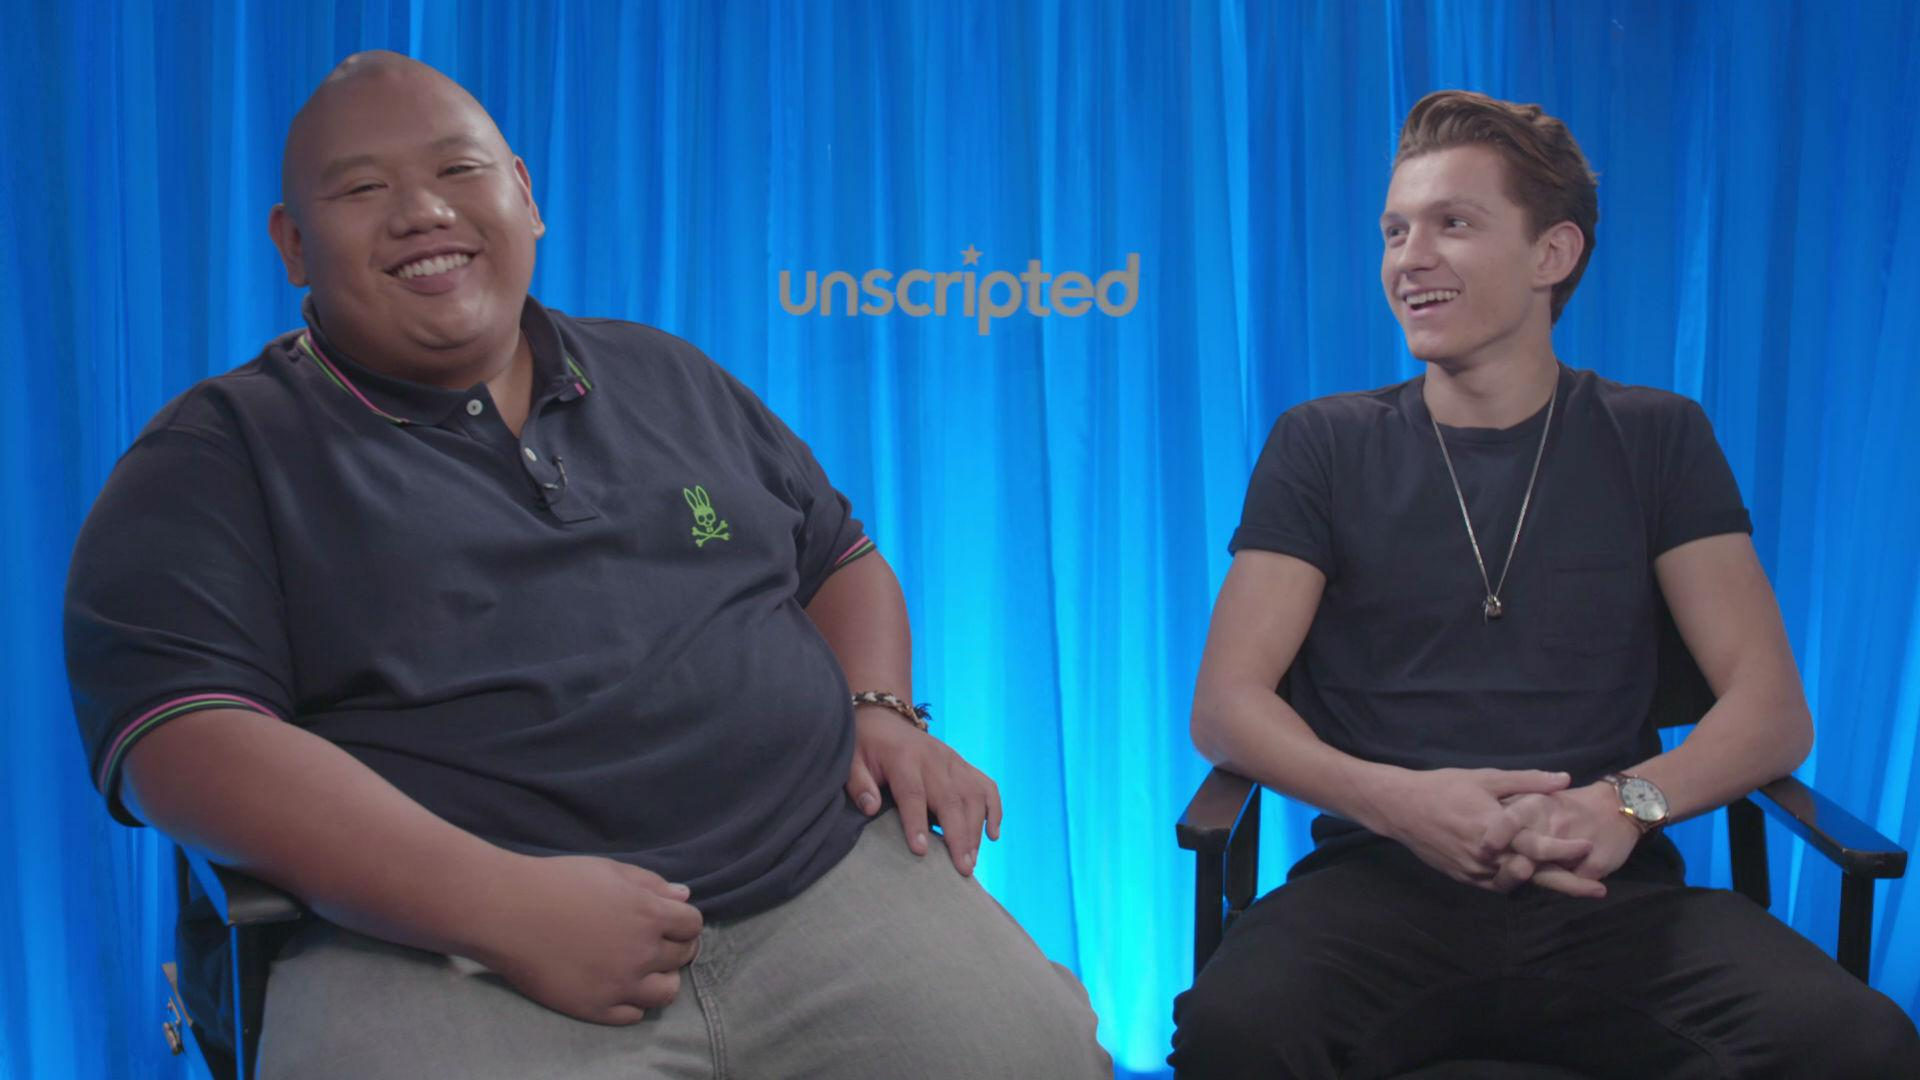 'Spider-Man: Homecoming' Unscripted